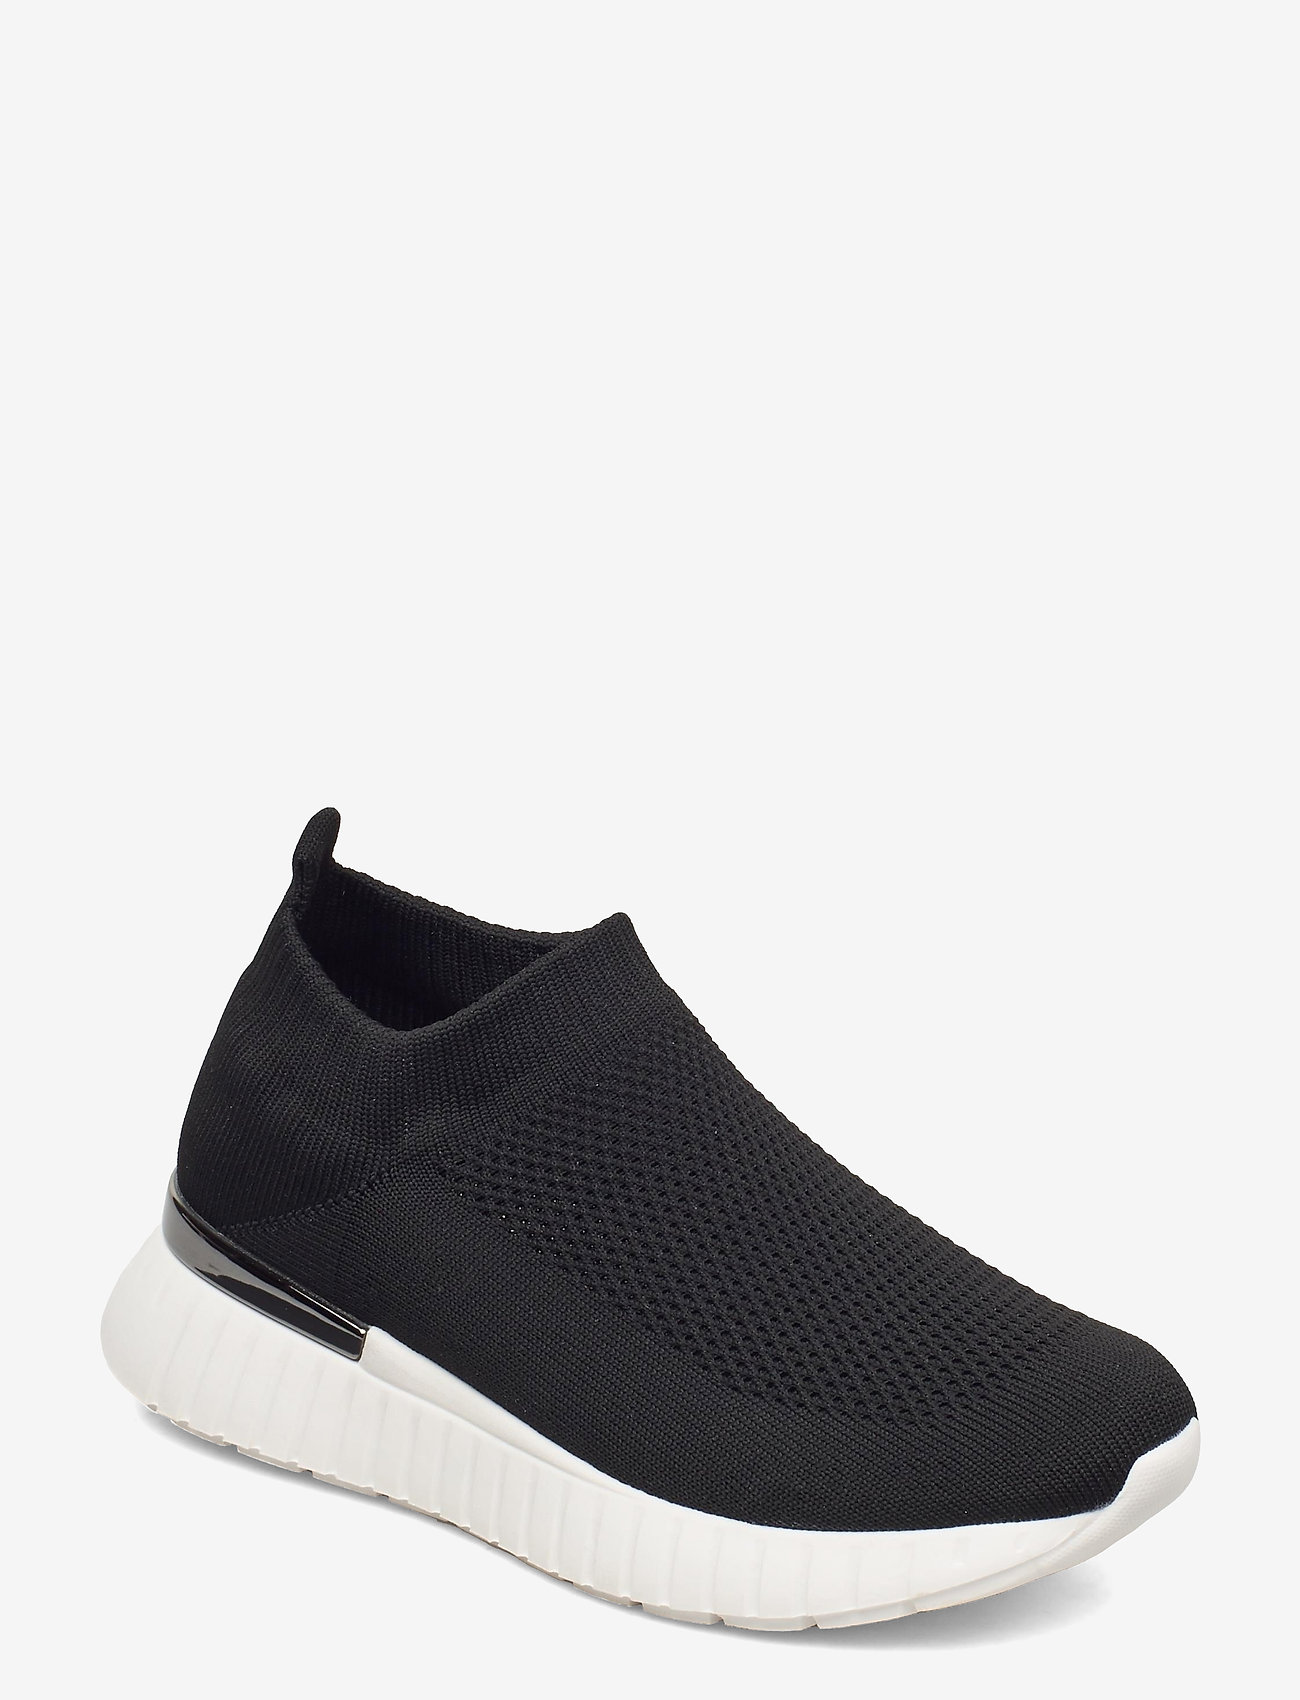 Ilse Jacobsen - Sneakers - slip-on sneakers - black - 0